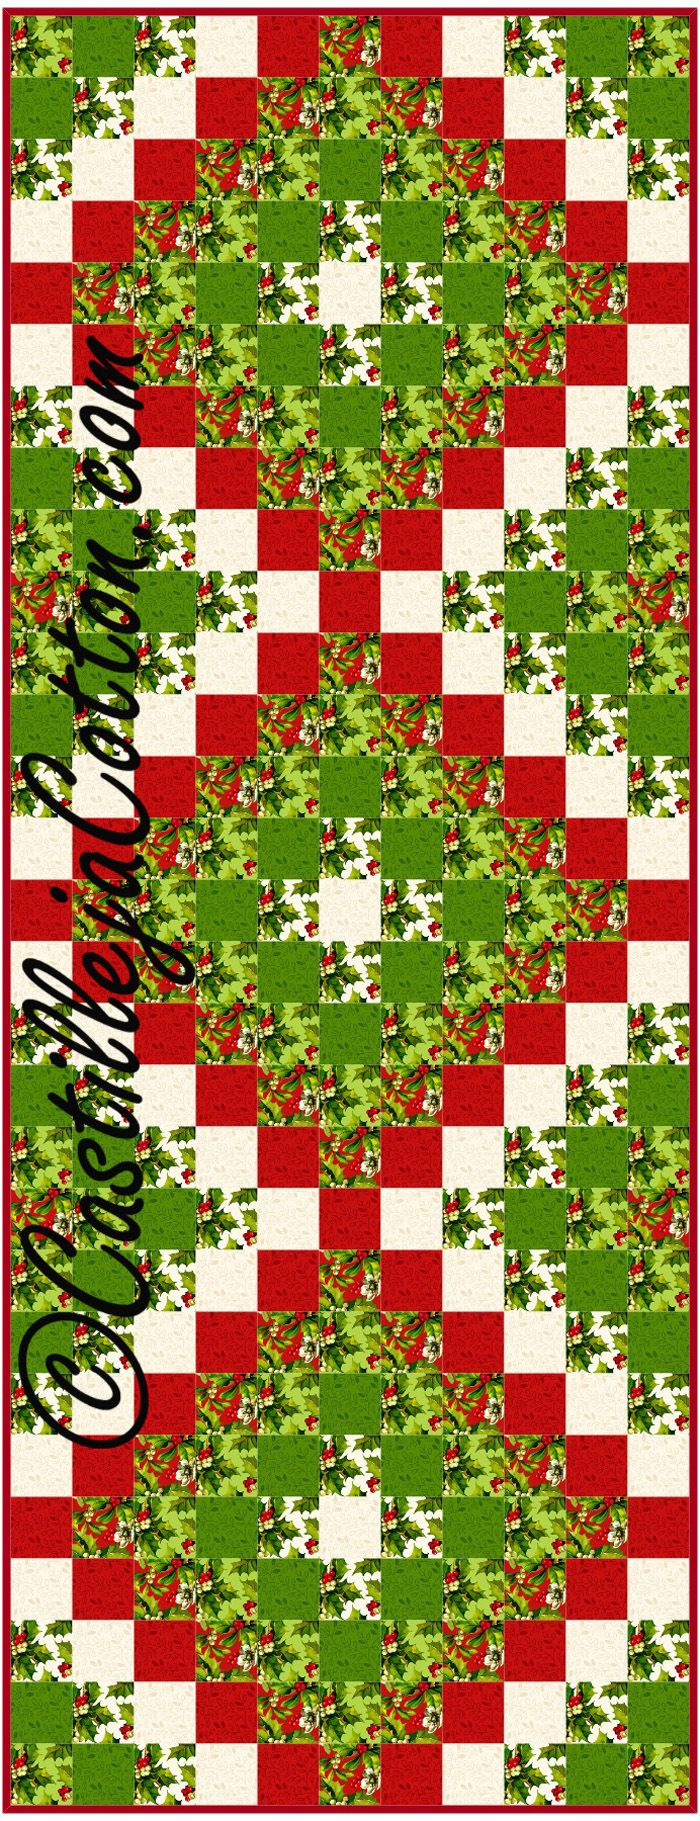 Pieced table runner for Christmas. Fat quarter friendly. Six Pack Trip Table Runner Pattern CJC-4447 by Castilleja Cotton - Diane McGregor.  Check out our Christmas patterns. https://www.pinterest.com/quiltwomancom/christmas/  Subscribe to our mailing list for updates on new patterns and sales! https://visitor.constantcontact.com/manage/optin?v=001nInsvTYVCuDEFMt6NnF5AZm5OdNtzij2ua4k-qgFIzX6B22GyGeBWSrTG2Of_W0RDlB-QaVpNqTrhbz9y39jbLrD2dlEPkoHf_P3E6E5nBNVQNAEUs-xVA%3D%3D